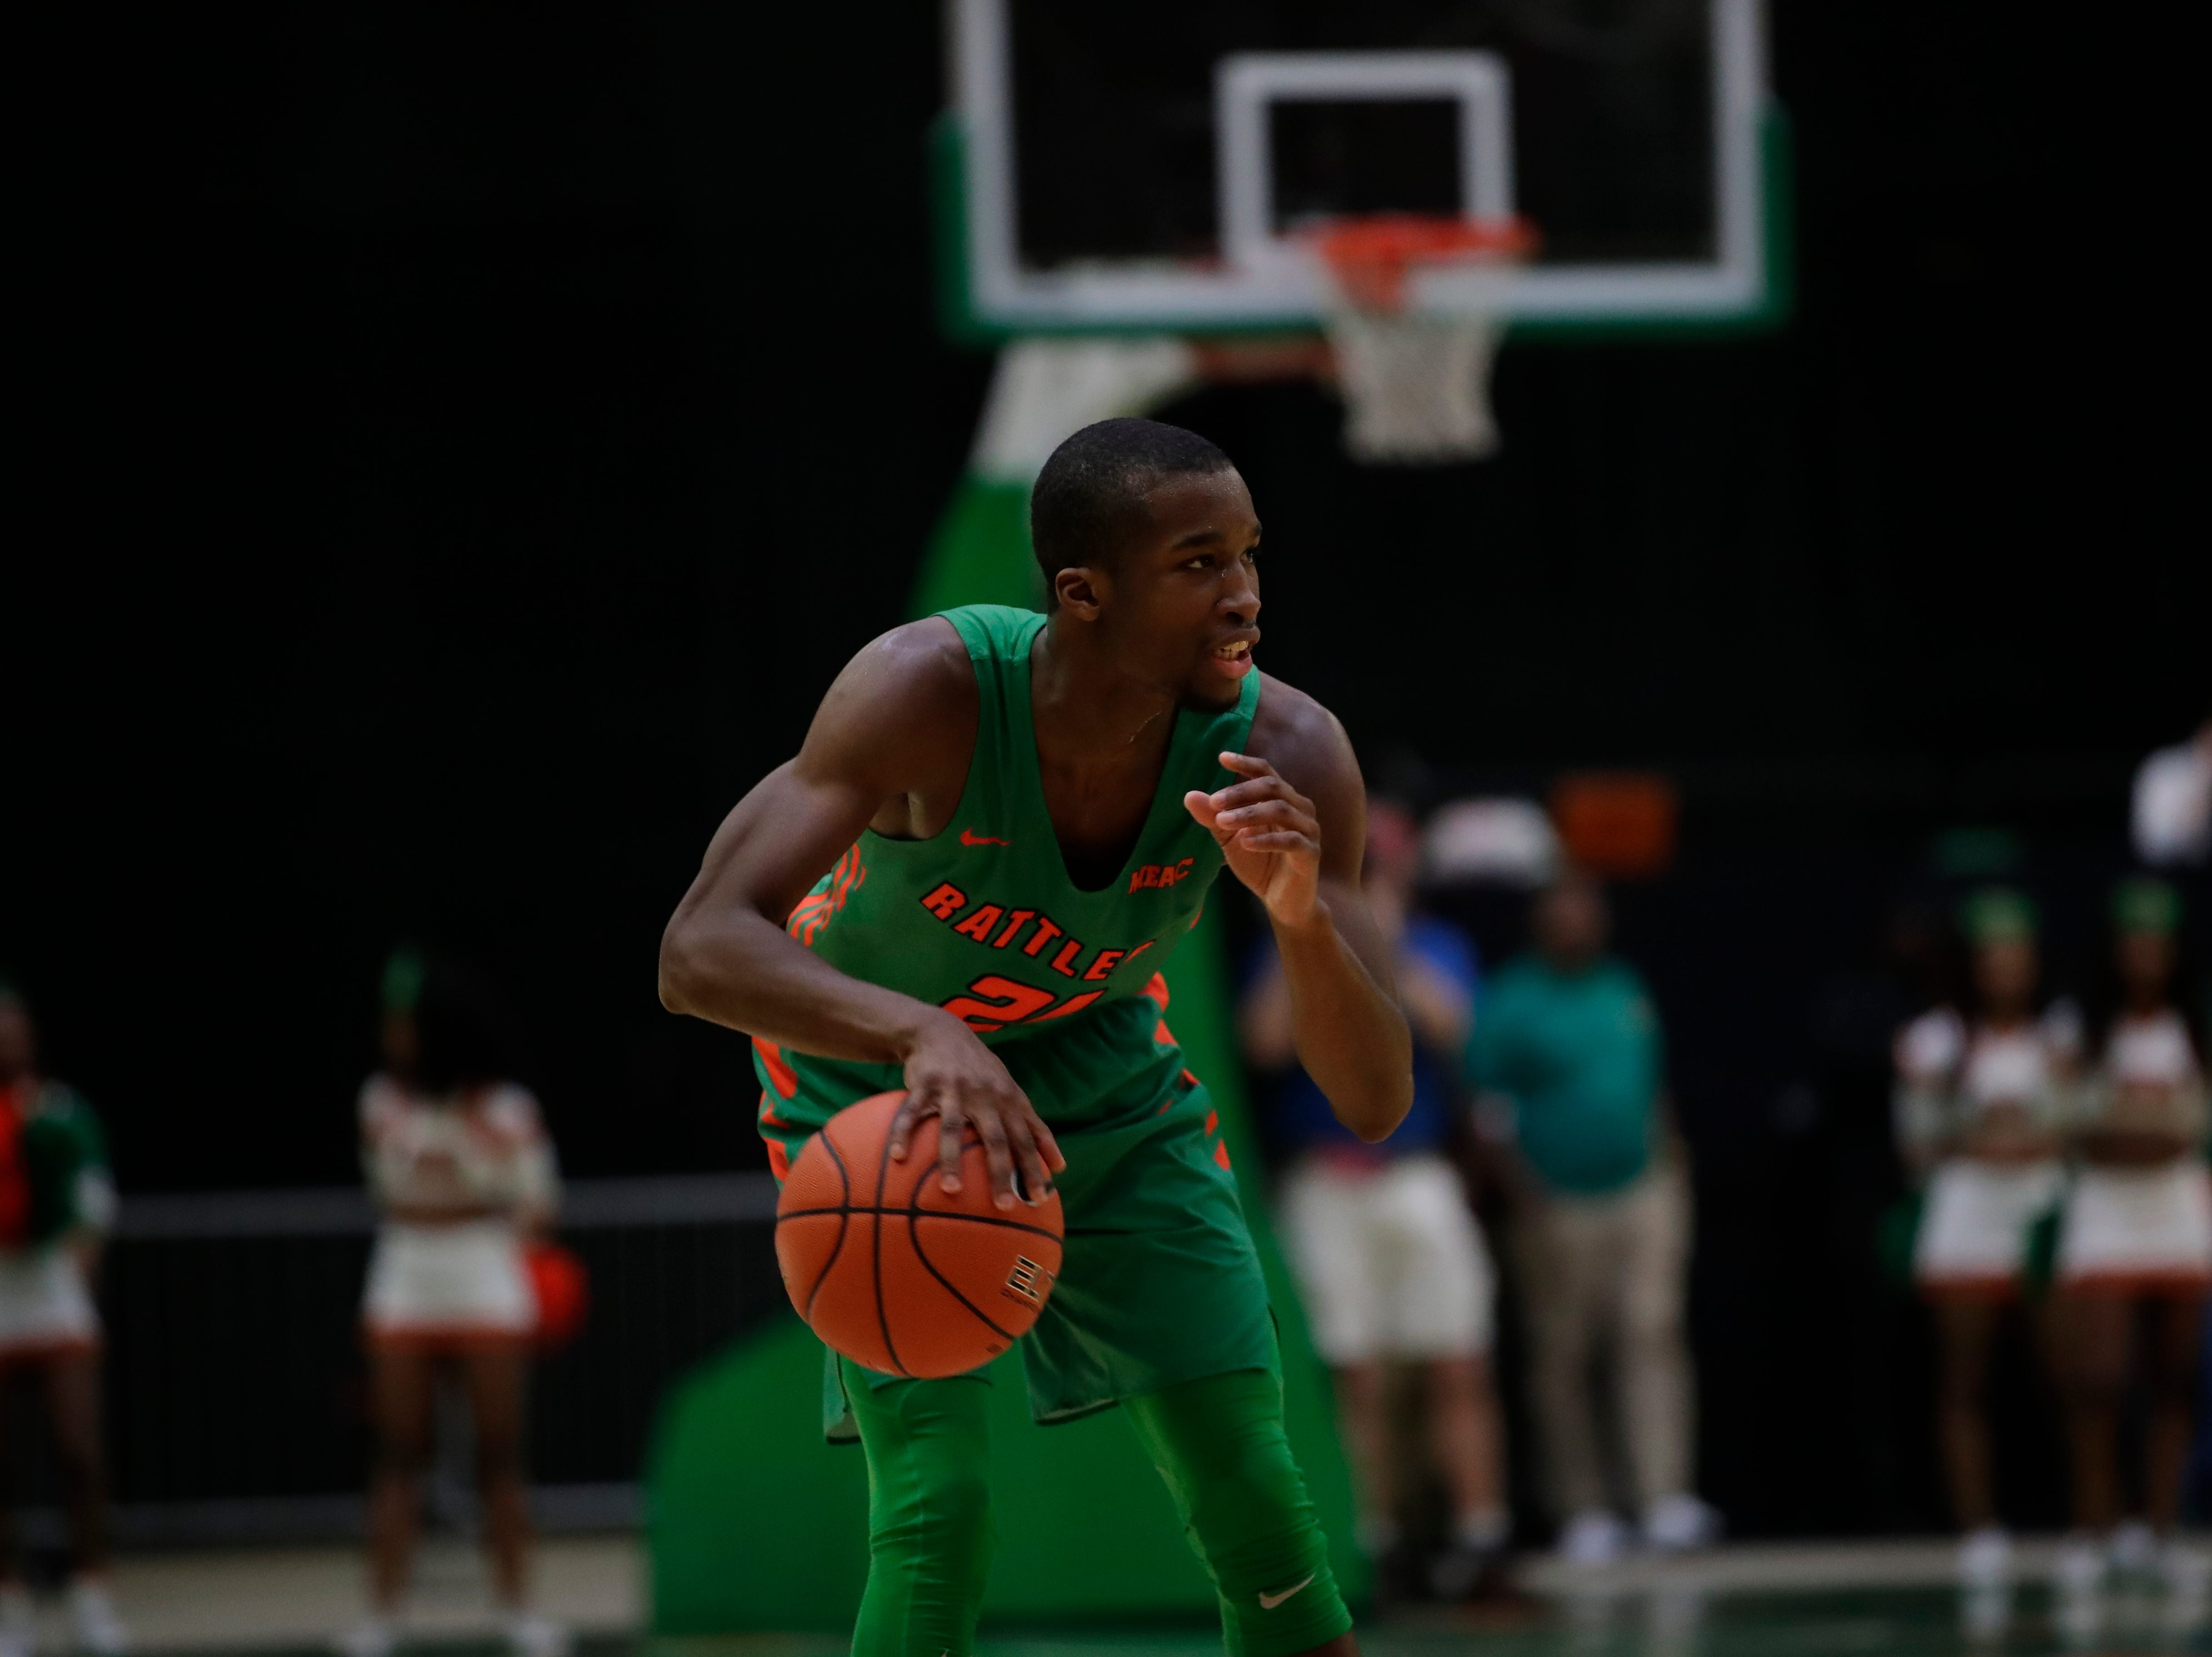 Florida A&M Rattlers guard Justin Ravenel scored a team-high 18 points against Norfolk State at the Alfred Lawson Jr. Multipurpose Center Monday, Feb. 11, 2019.